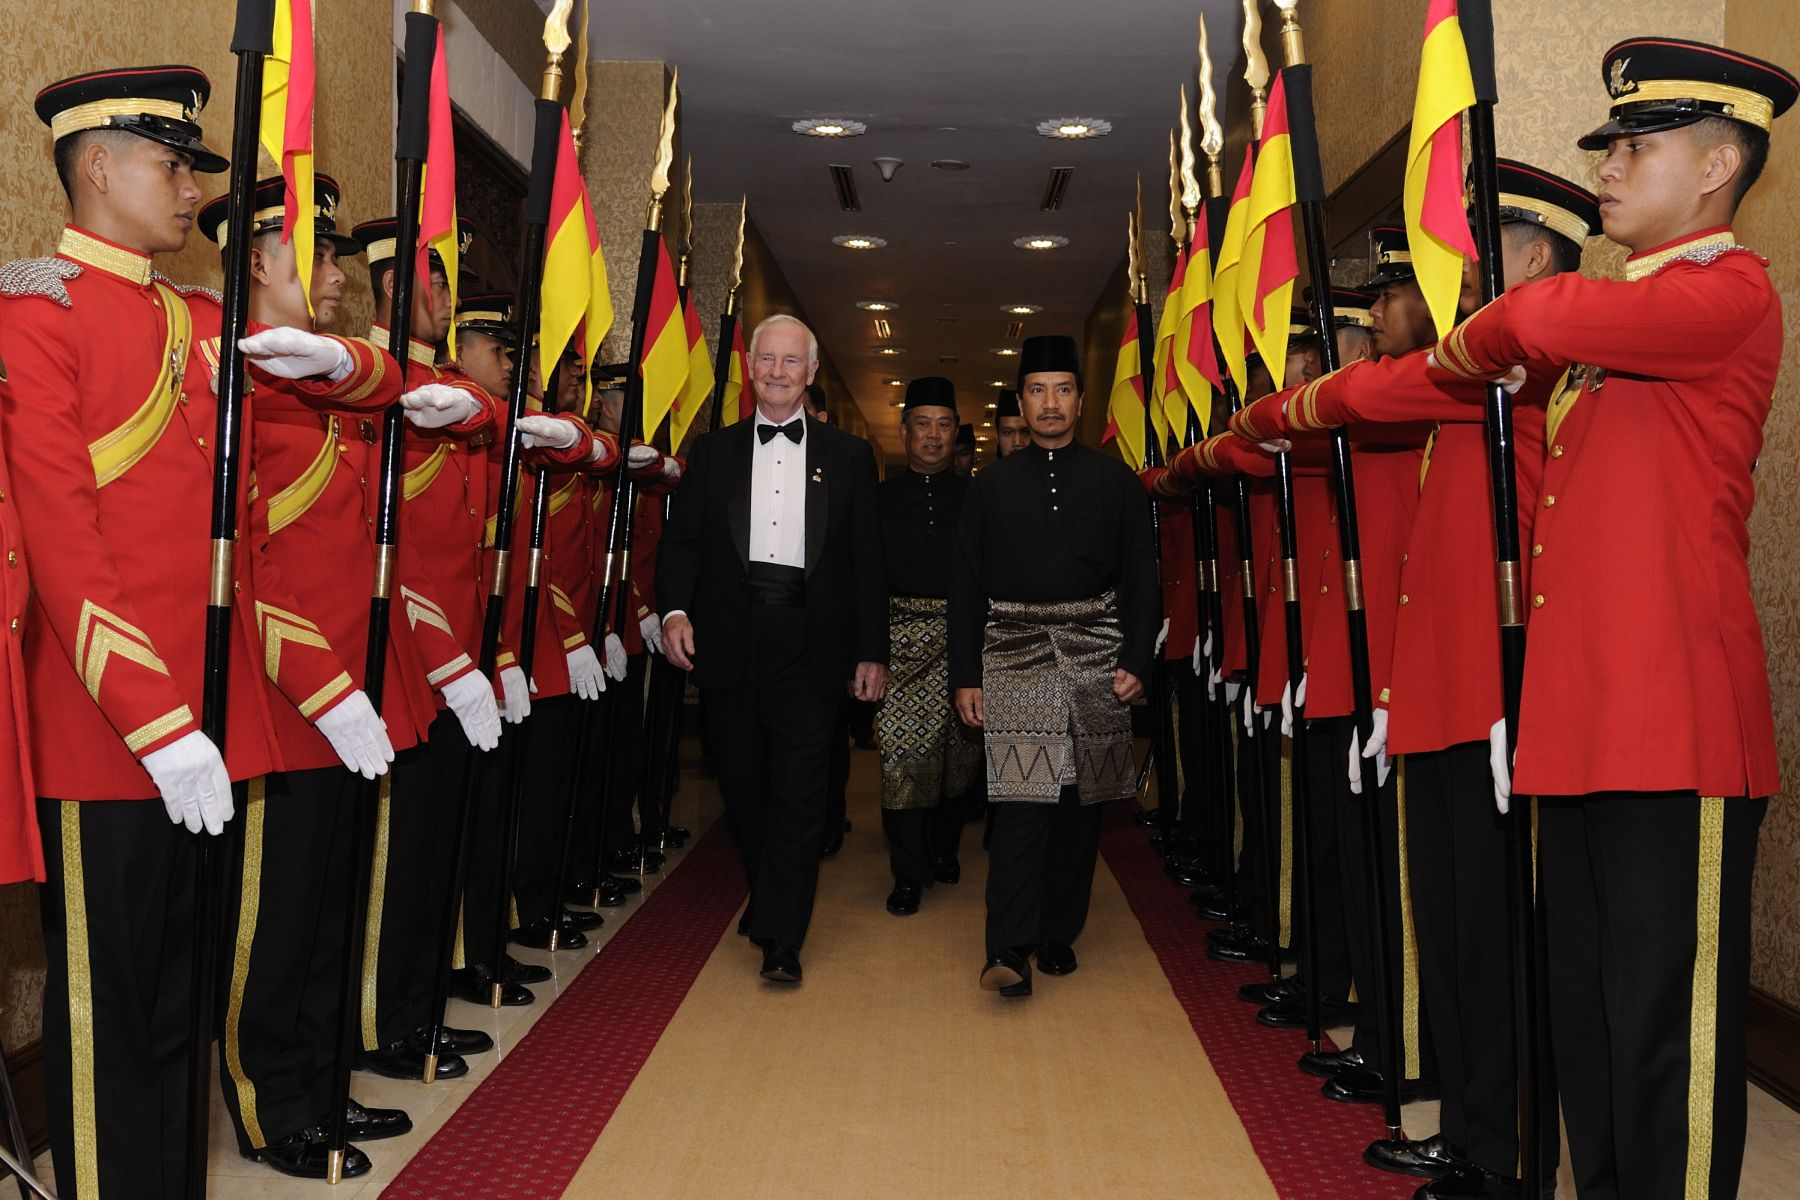 His Majesty The Yang di-Pertuan Agong, King of Malaysia, hosted a State banquet in honour of the Governor General's visit to Malaysia.